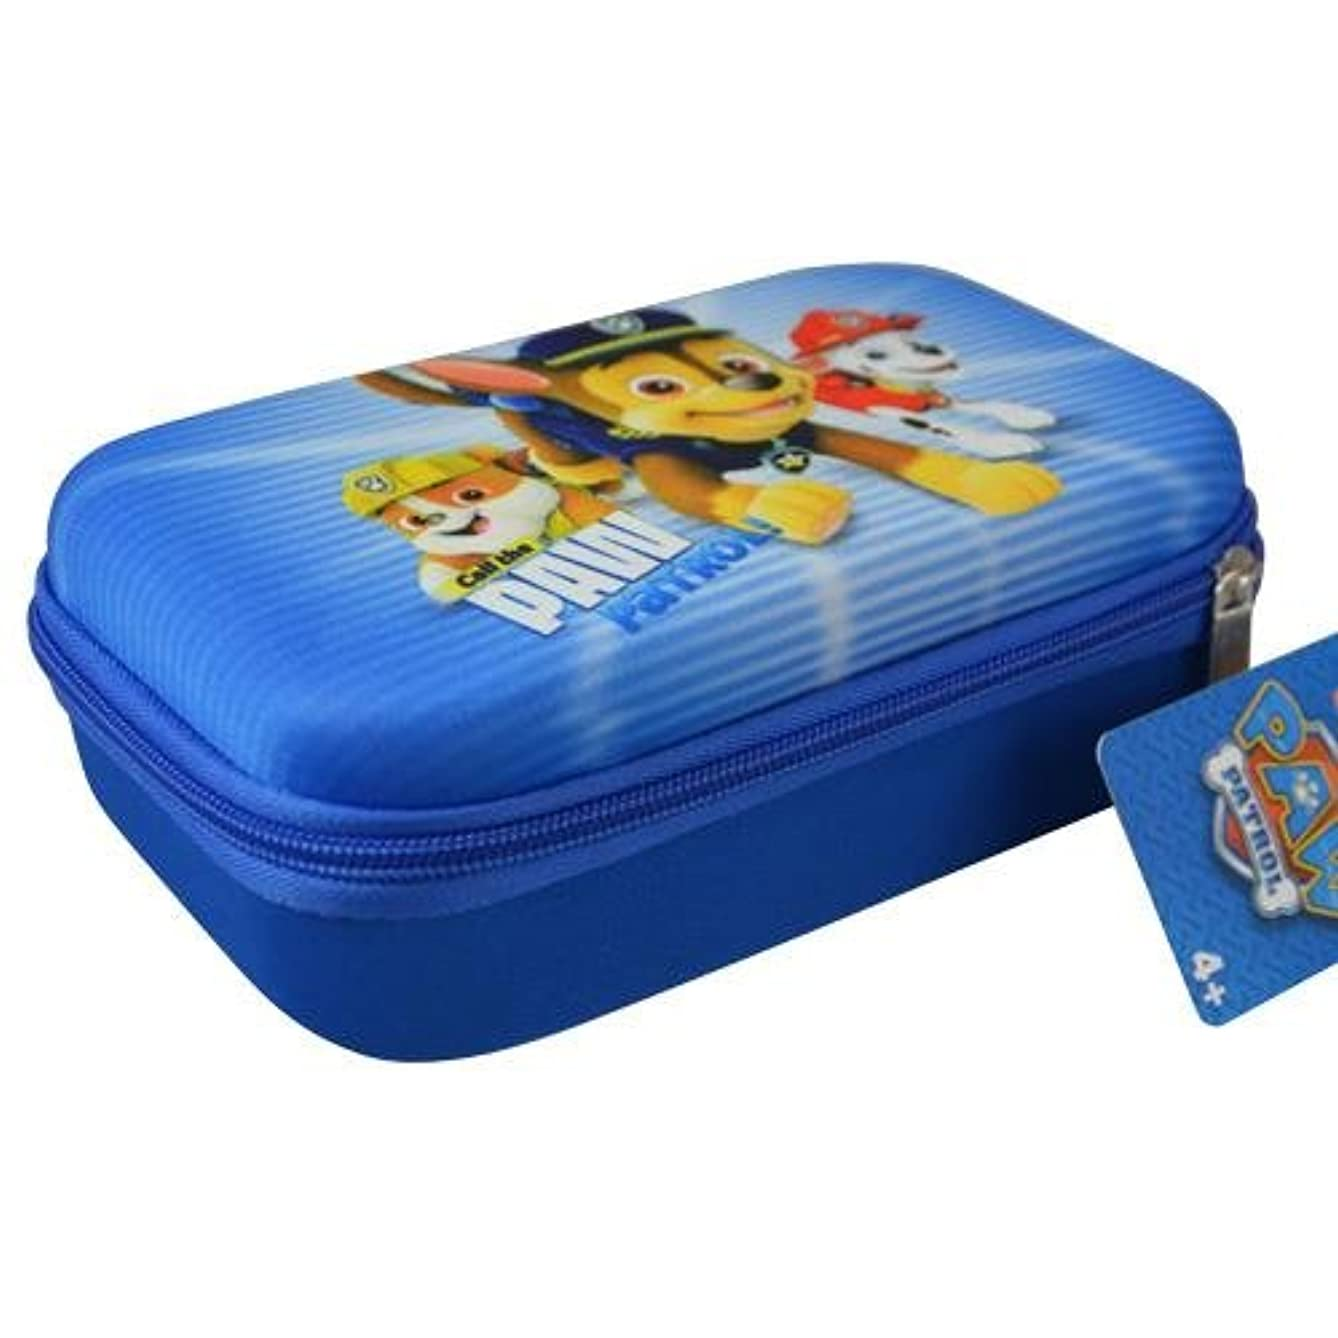 Hard Shell Zipper Pencil Case (Great for Small Toy Storage Organizer, Cosmetic Pouch etc.) (Paw Patrol)